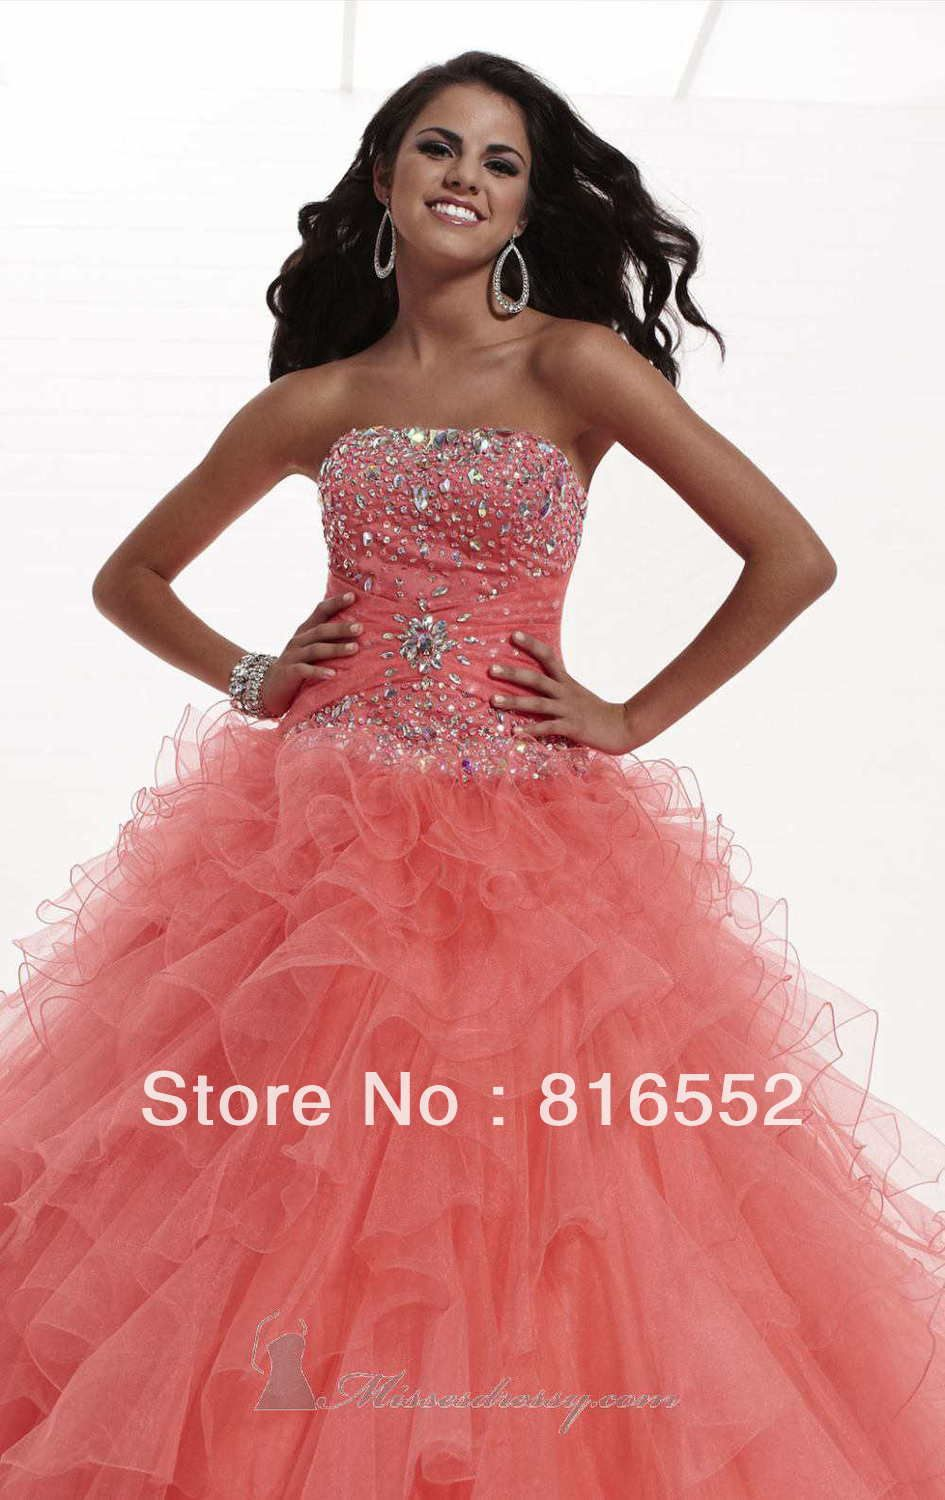 Find More Prom Dresses Information about 2014 New Style LR00100 Color size can be customized Elegant Beaded with Layered ruffle Floor Length Prom dress,High Quality can can fancy dress,China can you dye dresses Suppliers, Cheap can you dye a dress from Julia wedding dress co., LTD on Aliexpress.com